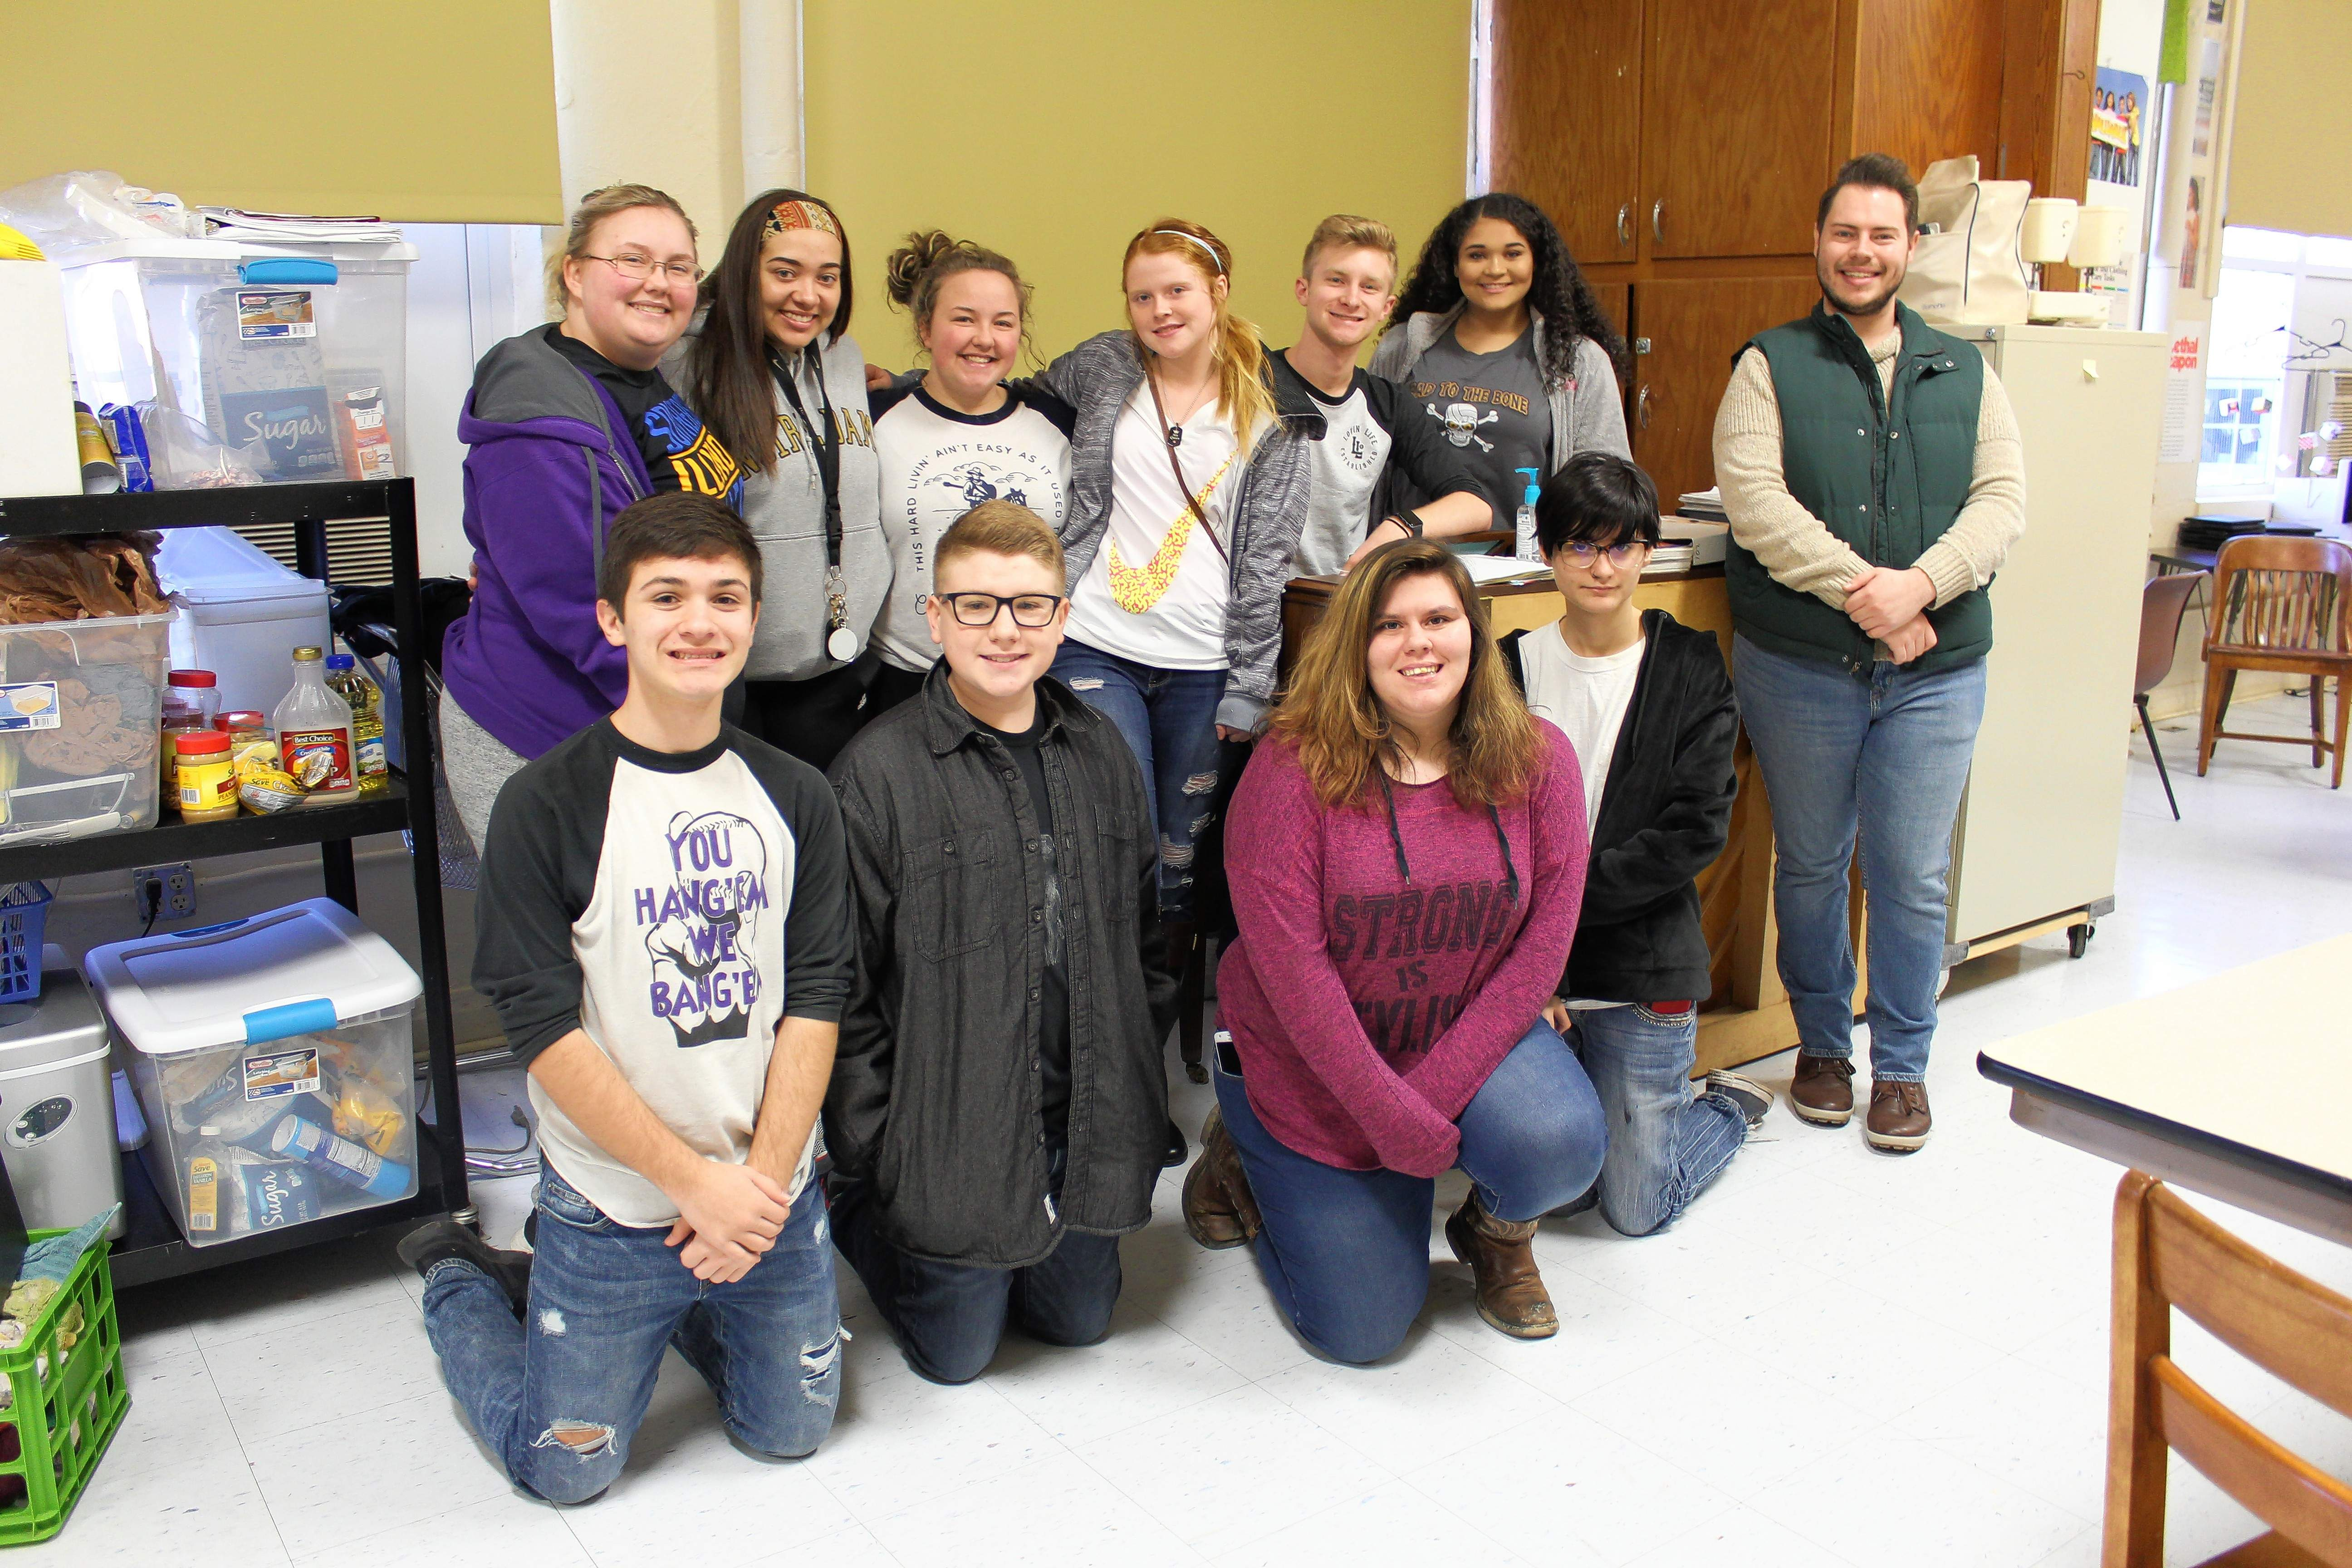 Carrier Mills-Stonefort High School students who attended were (kneeling,from left) Mason Kalodner, Colton Rice, Hallee Fitzgerald, and Rachel Sturgess, and (standing) Alex Morris, Jillian Crisp, Sami Morris, Arista Benton, Kale Rister, Lily Crisp, and CMSF music teacher and choir director Caleb Long.